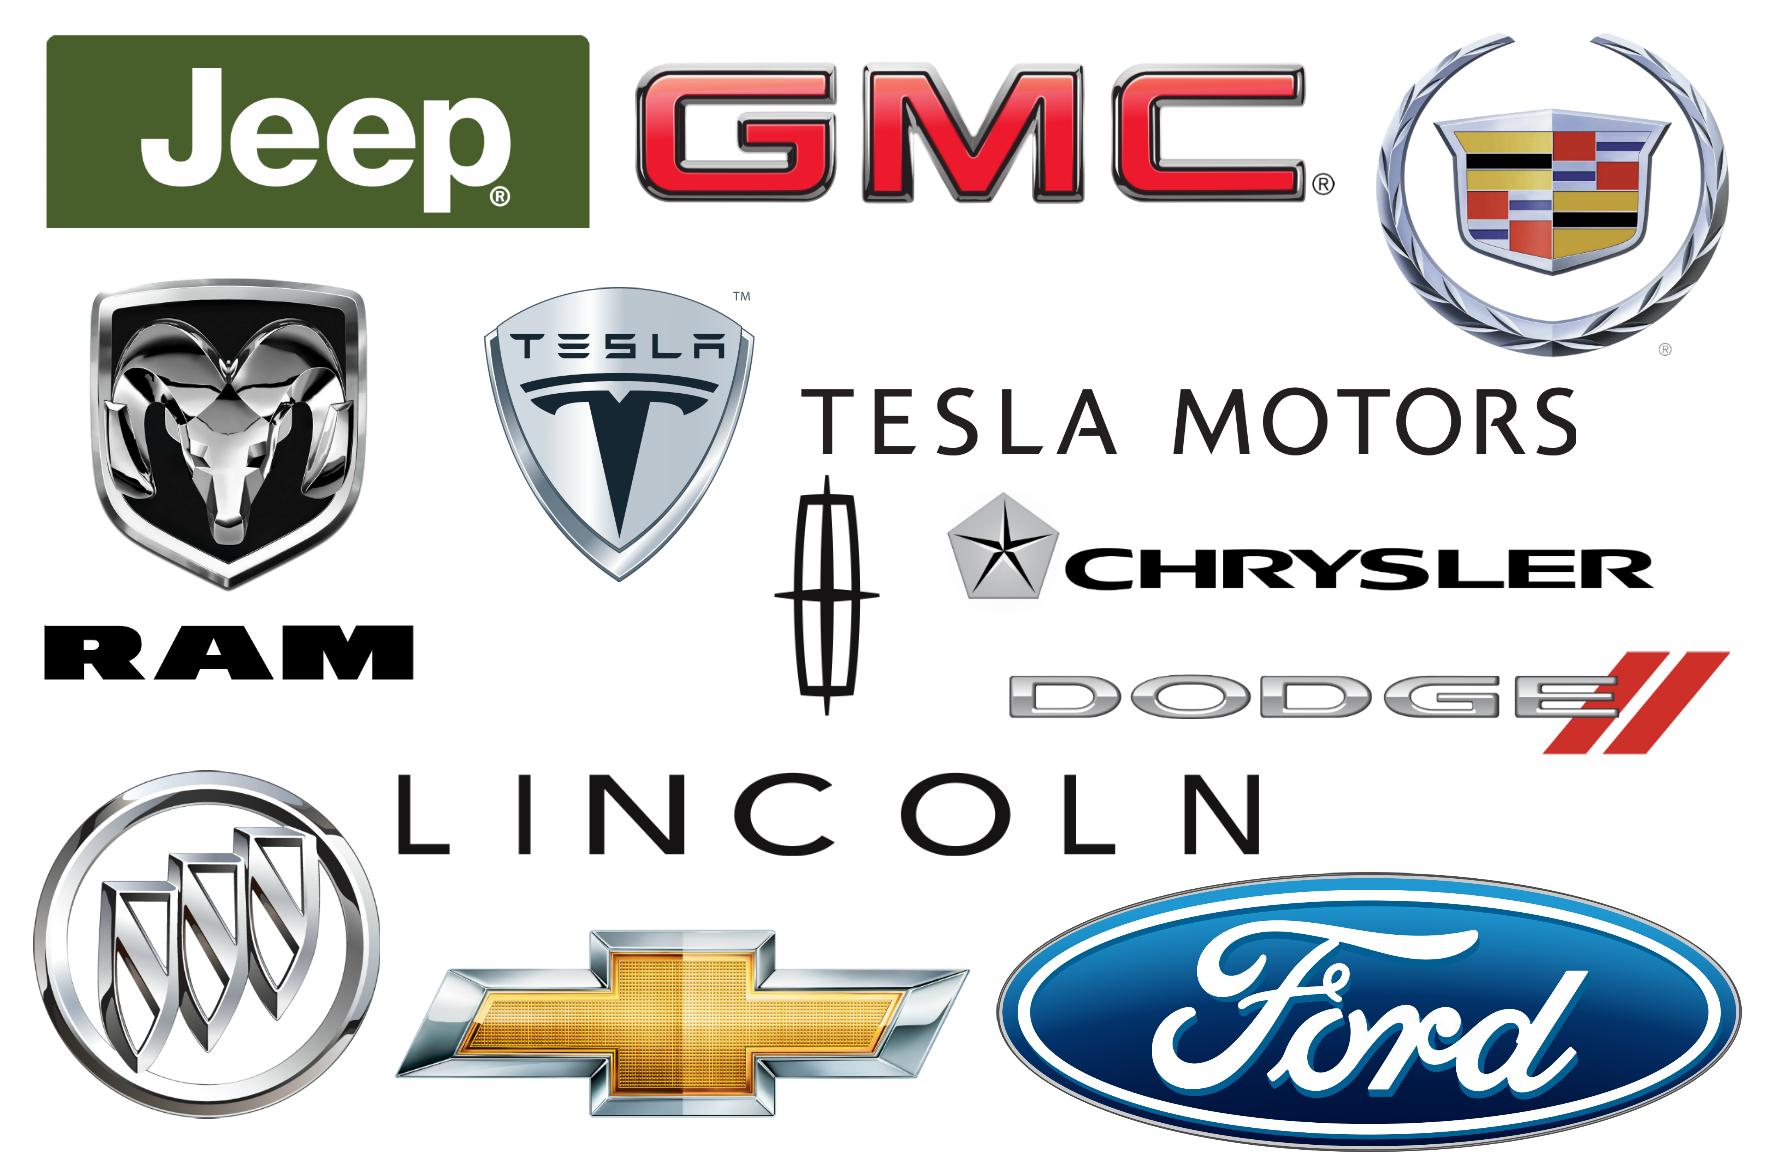 American Car Brands Companies And Manufacturers Car Brand Names Com